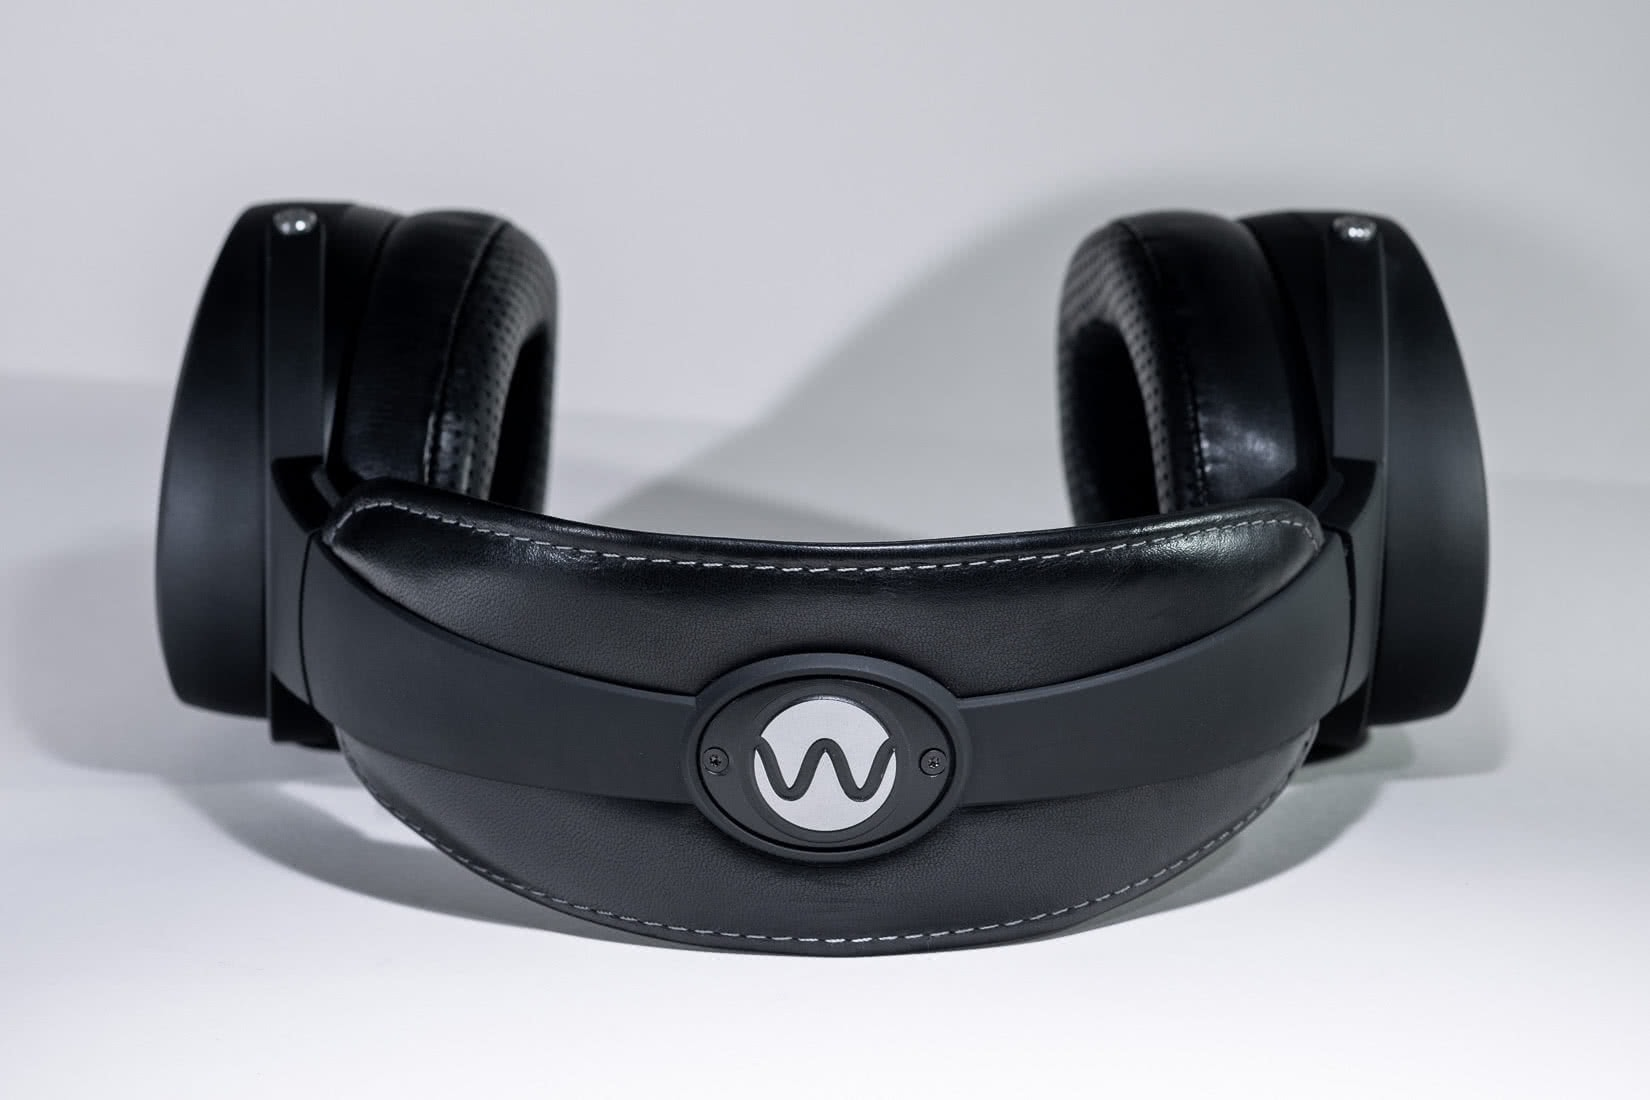 warwick acoustics aperio headphones system review - Luxe Digital